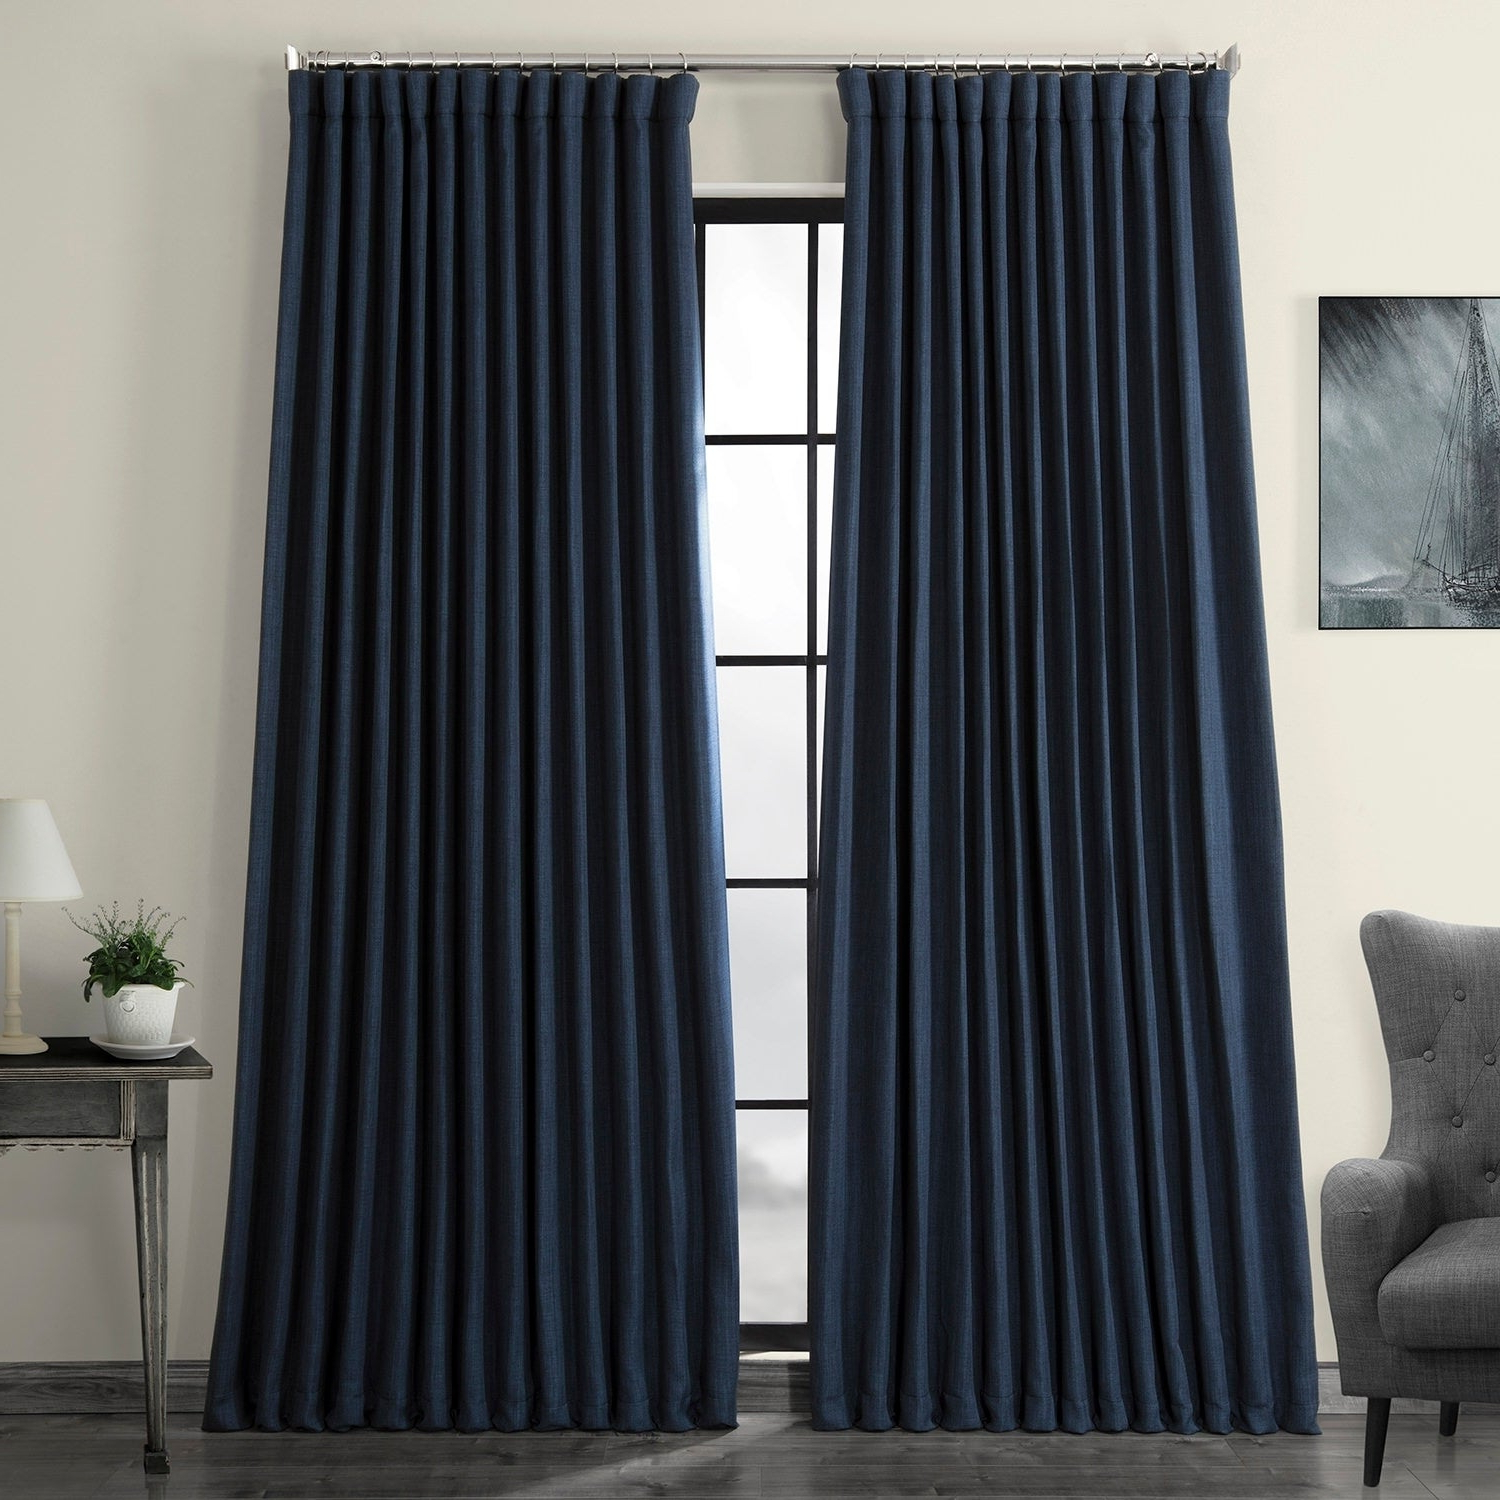 Most Recent Faux Linen Extra Wide Blackout Curtains Pertaining To Exclusive Fabrics Faux Linen Extra Wide Blackout Curtain (Gallery 1 of 21)